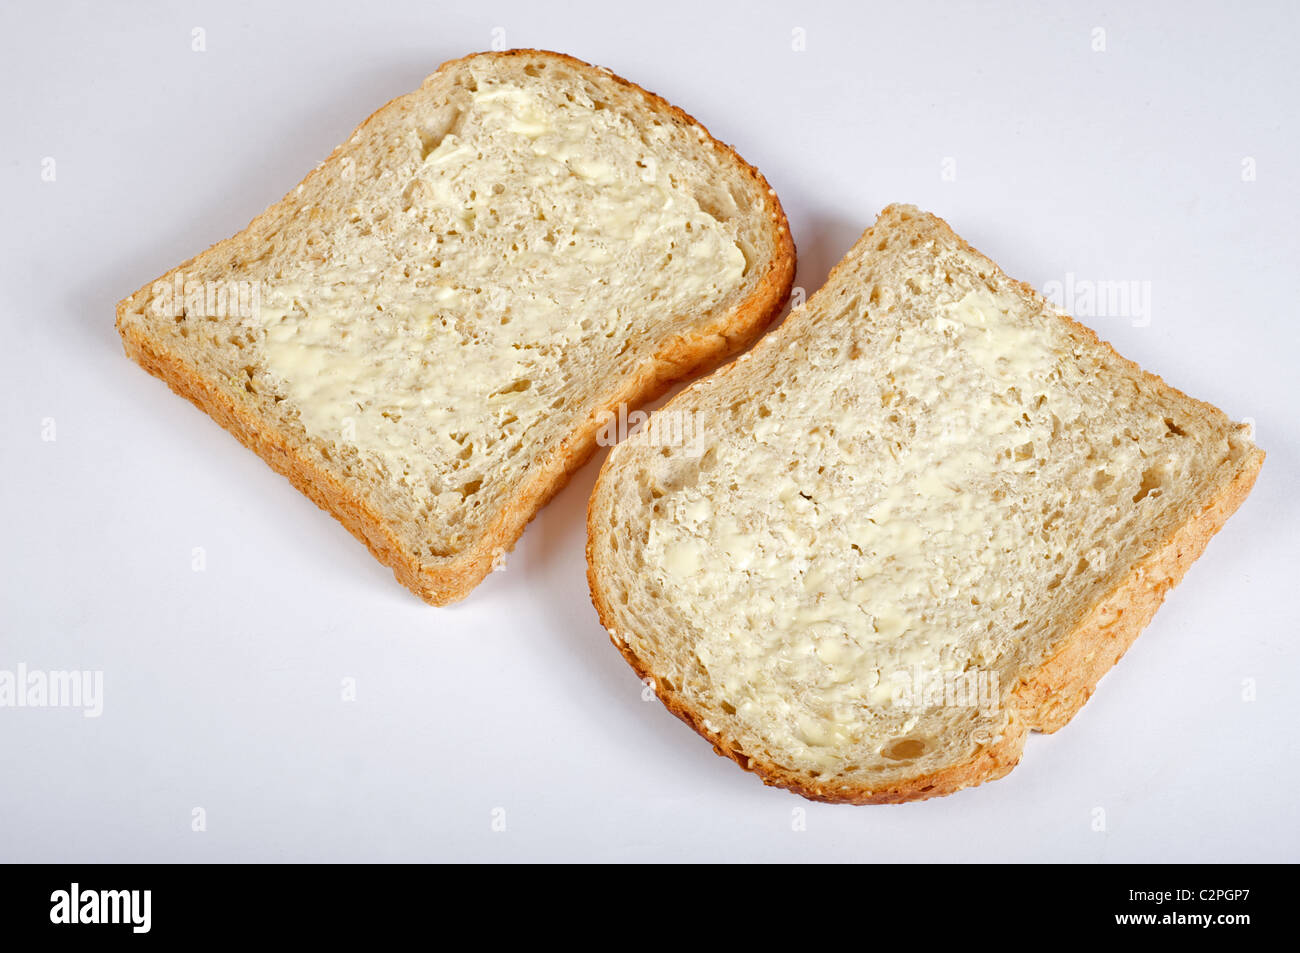 Buttered slices of Hovis hearty oat bread - Stock Image